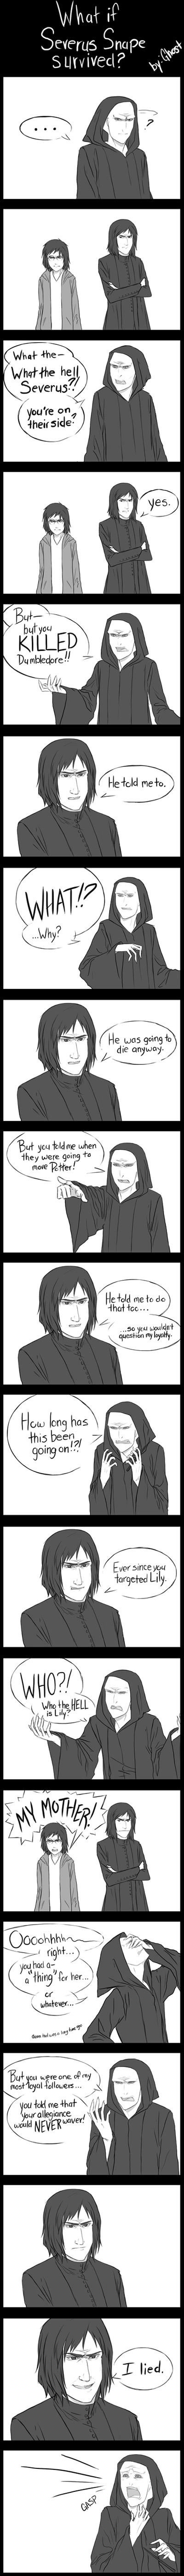 Professor Snape, a man you spend so much time believing was a bad guy, but in the end he was Dumbledore's man the whole time. All for the son of the woman he loved, so many years before.